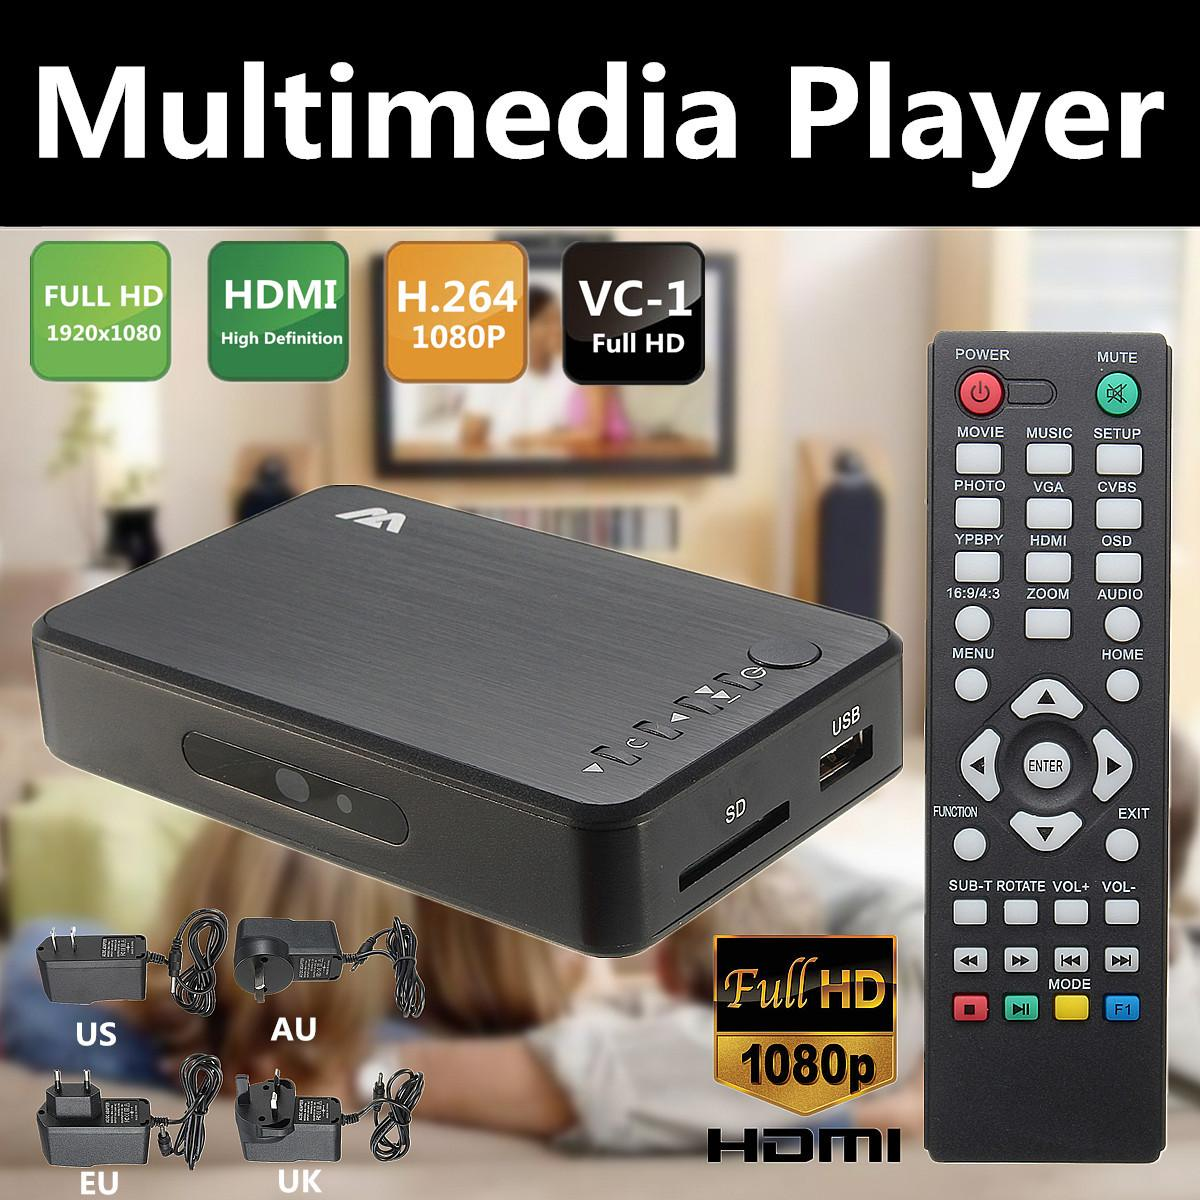 Full 1080P HD Multi Media Player HDMI/VGA/AV w/ Remote Control TV BOX 3 FAT32 NTFS Output EU/UK/US/AU Portable Easy InstallationFull 1080P HD Multi Media Player HDMI/VGA/AV w/ Remote Control TV BOX 3 FAT32 NTFS Output EU/UK/US/AU Portable Easy Installation